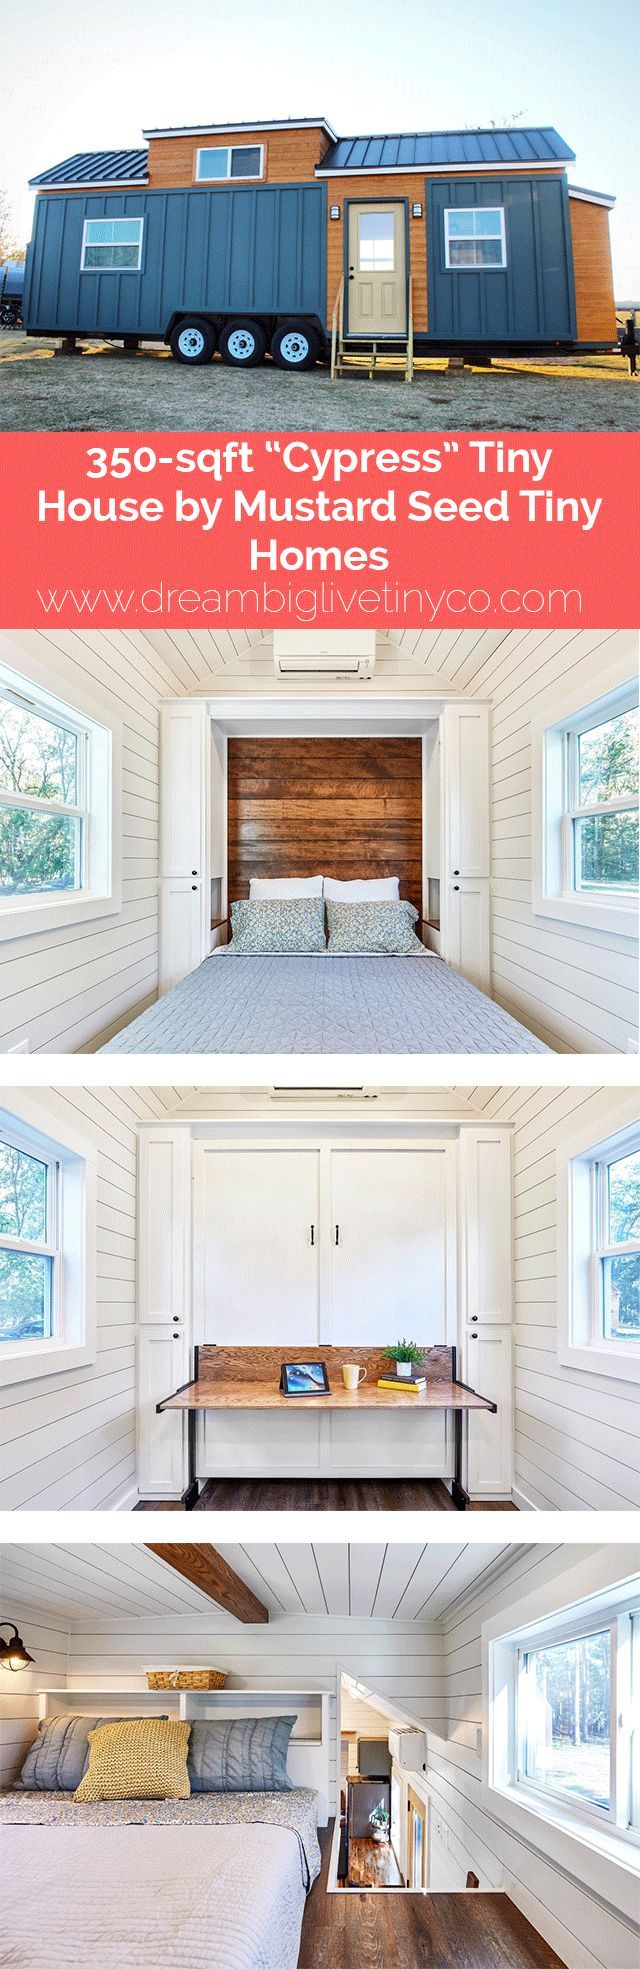 "350-sqft ""Cypress"" Tiny House by Mustard Seed Tiny Homes #tinyhousebathroom"